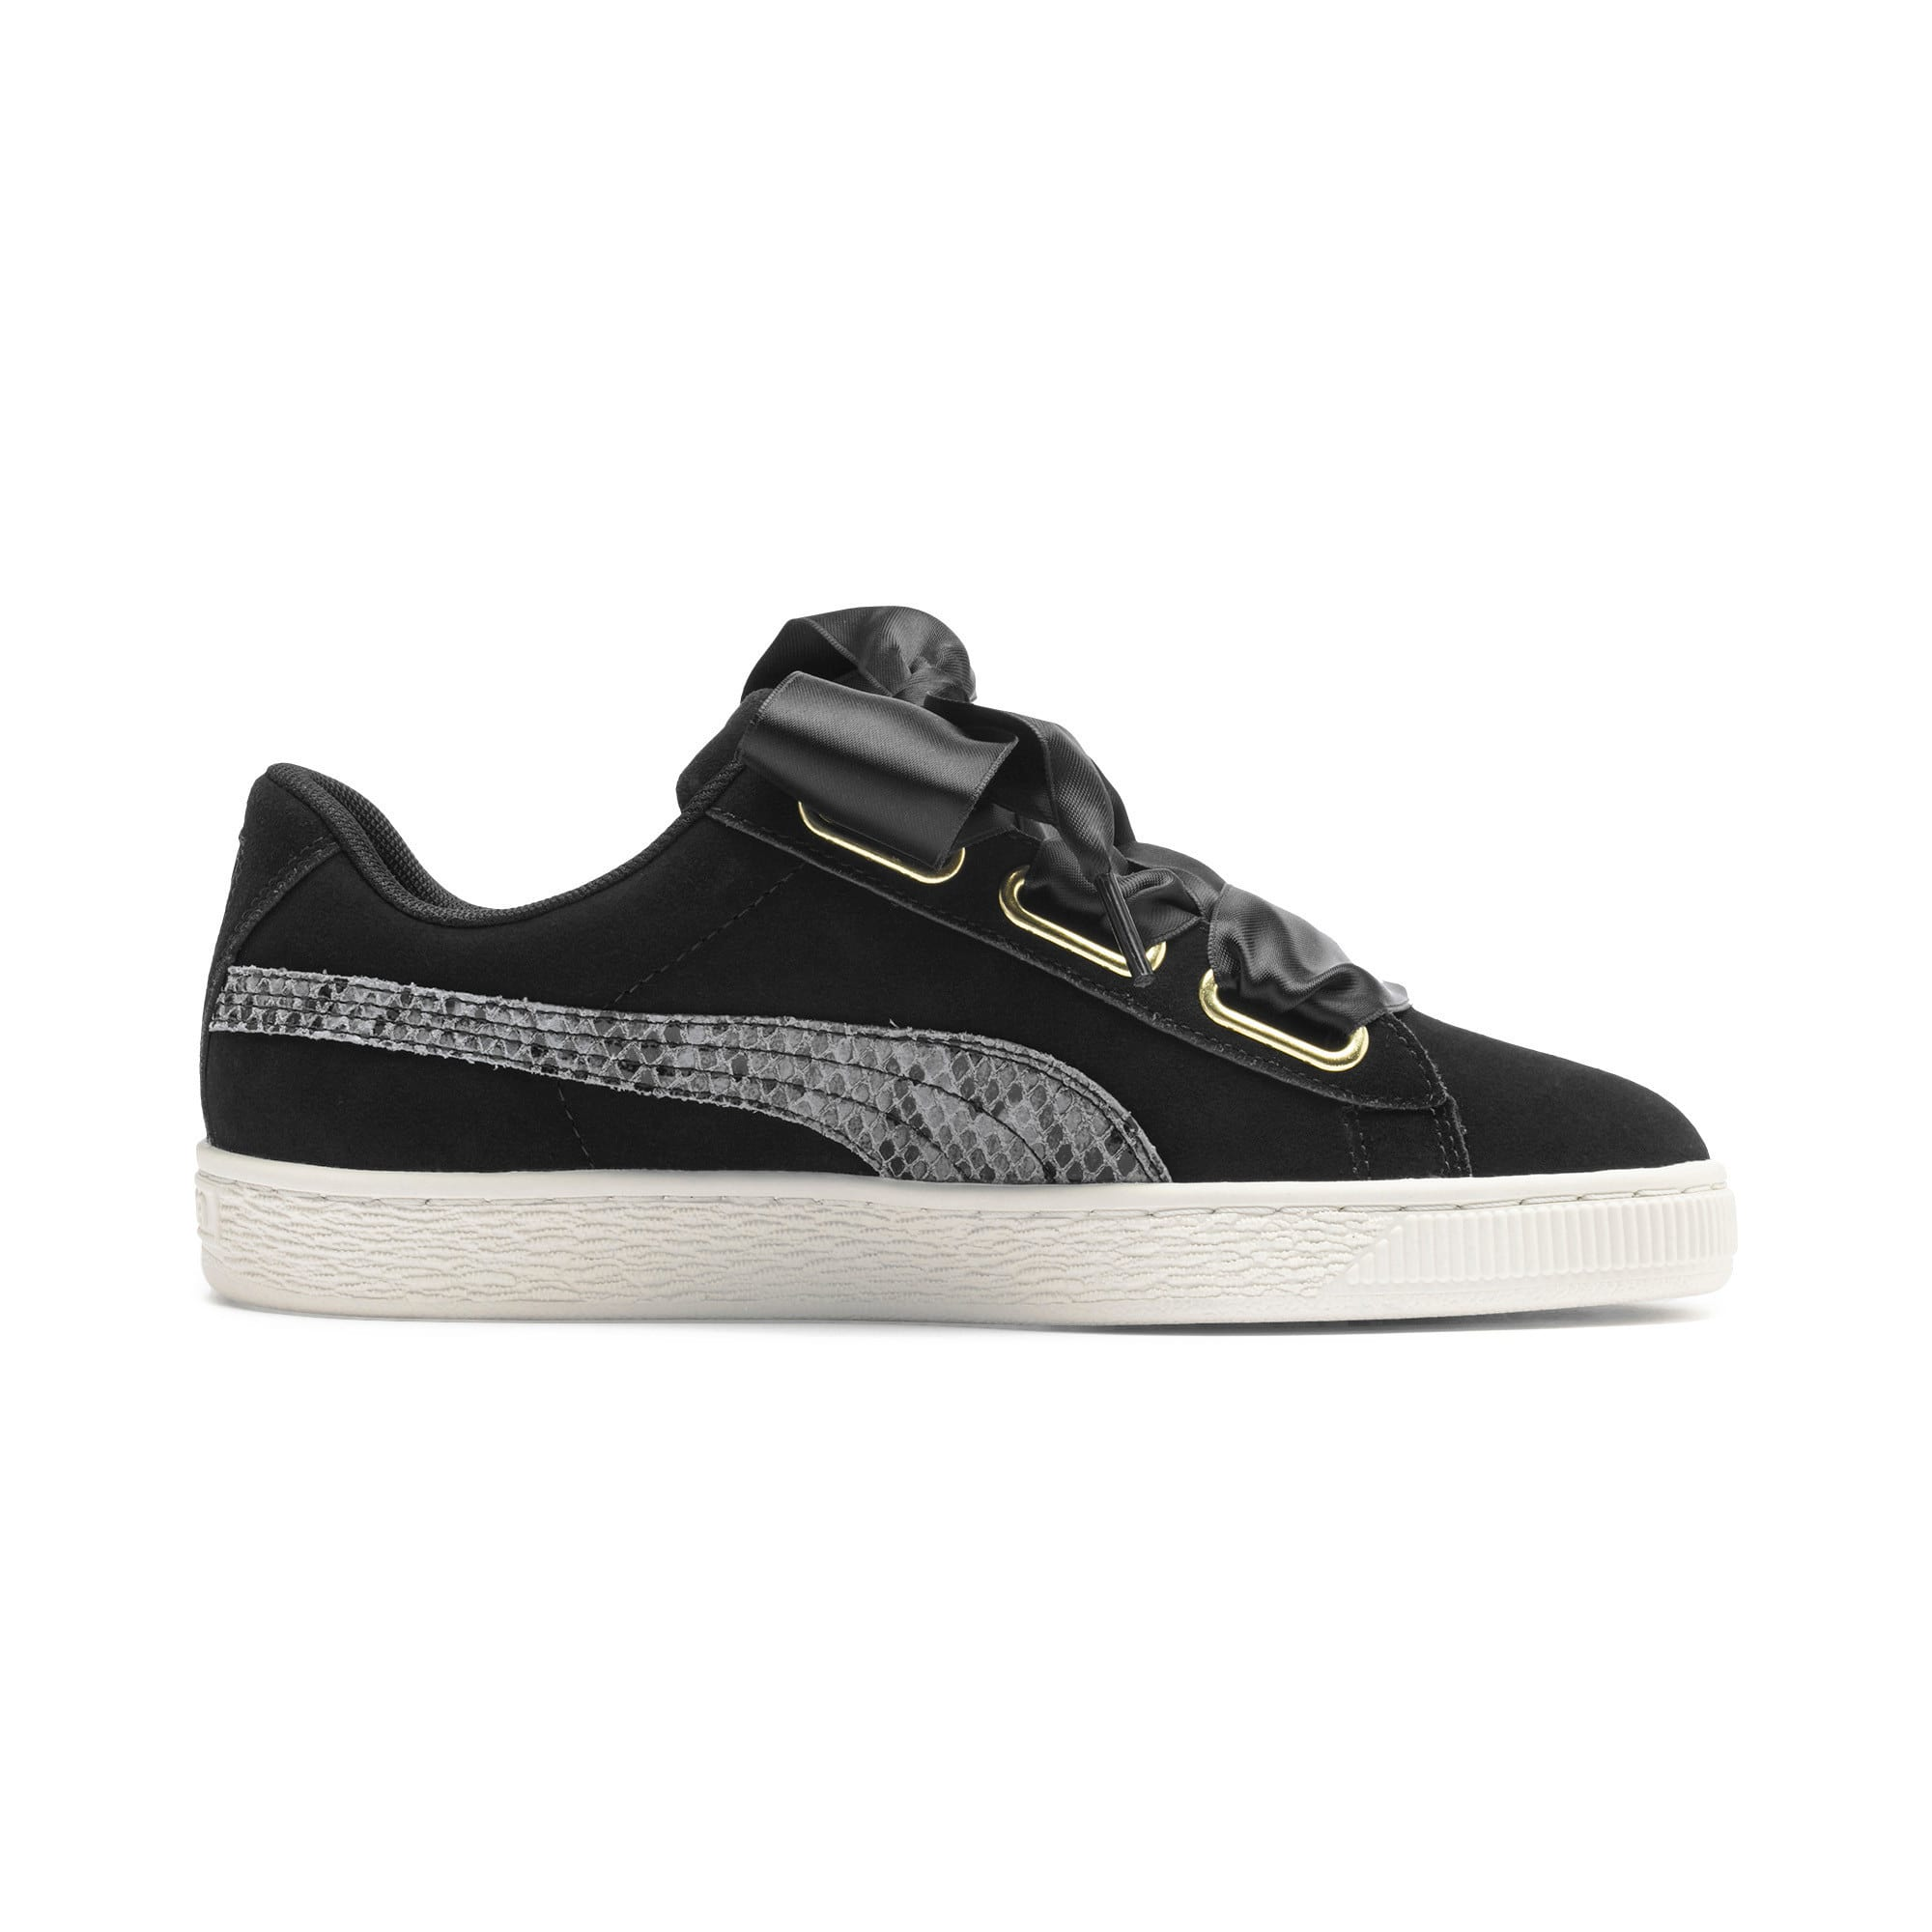 Thumbnail 5 of Suede Heart Snake Lux Women's Trainers, Puma Black-Puma Team Gold, medium-IND